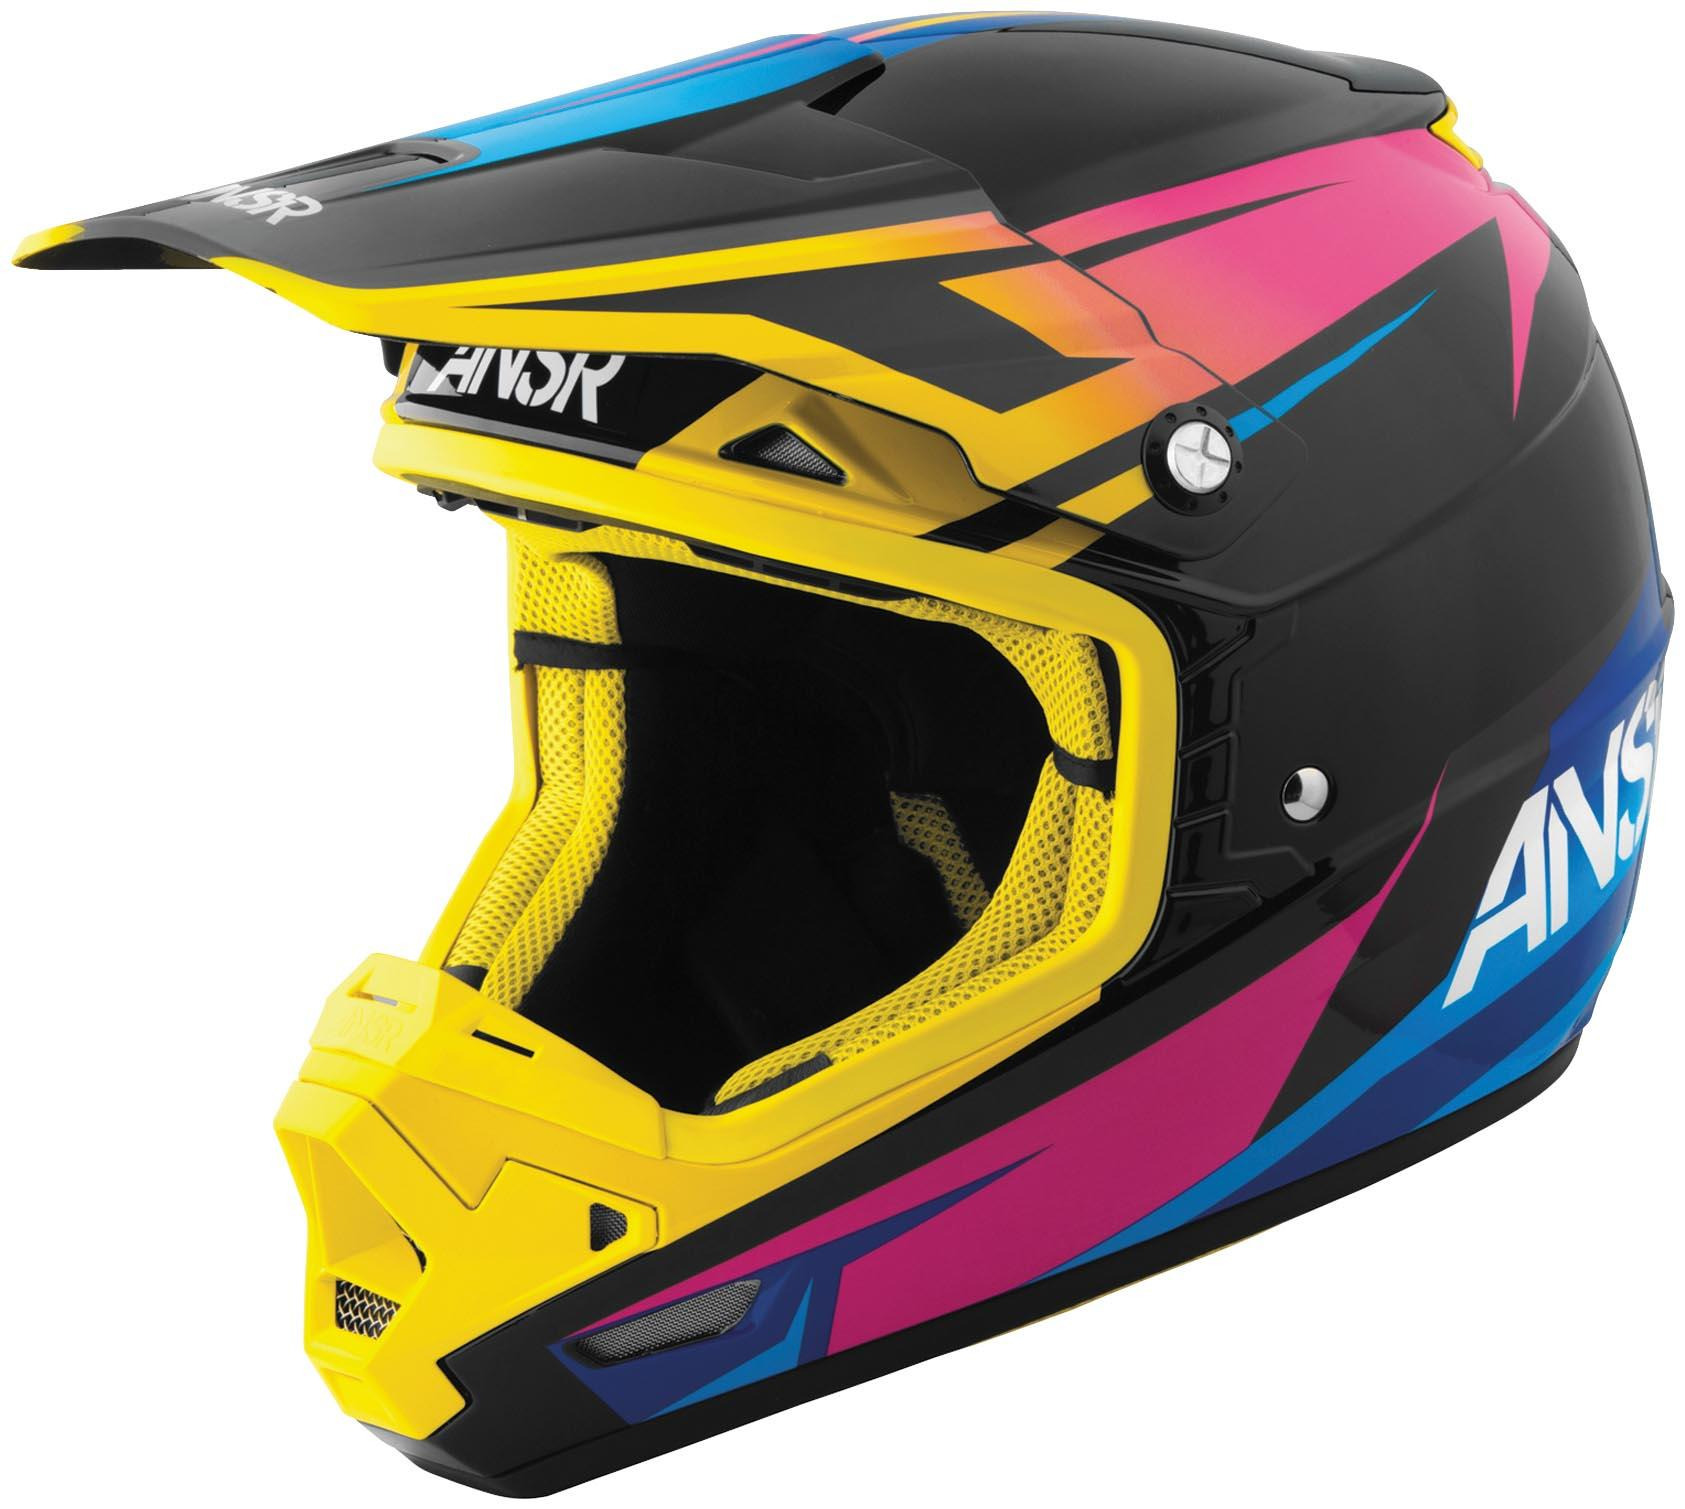 A14 Evolve Spectrum Helmet